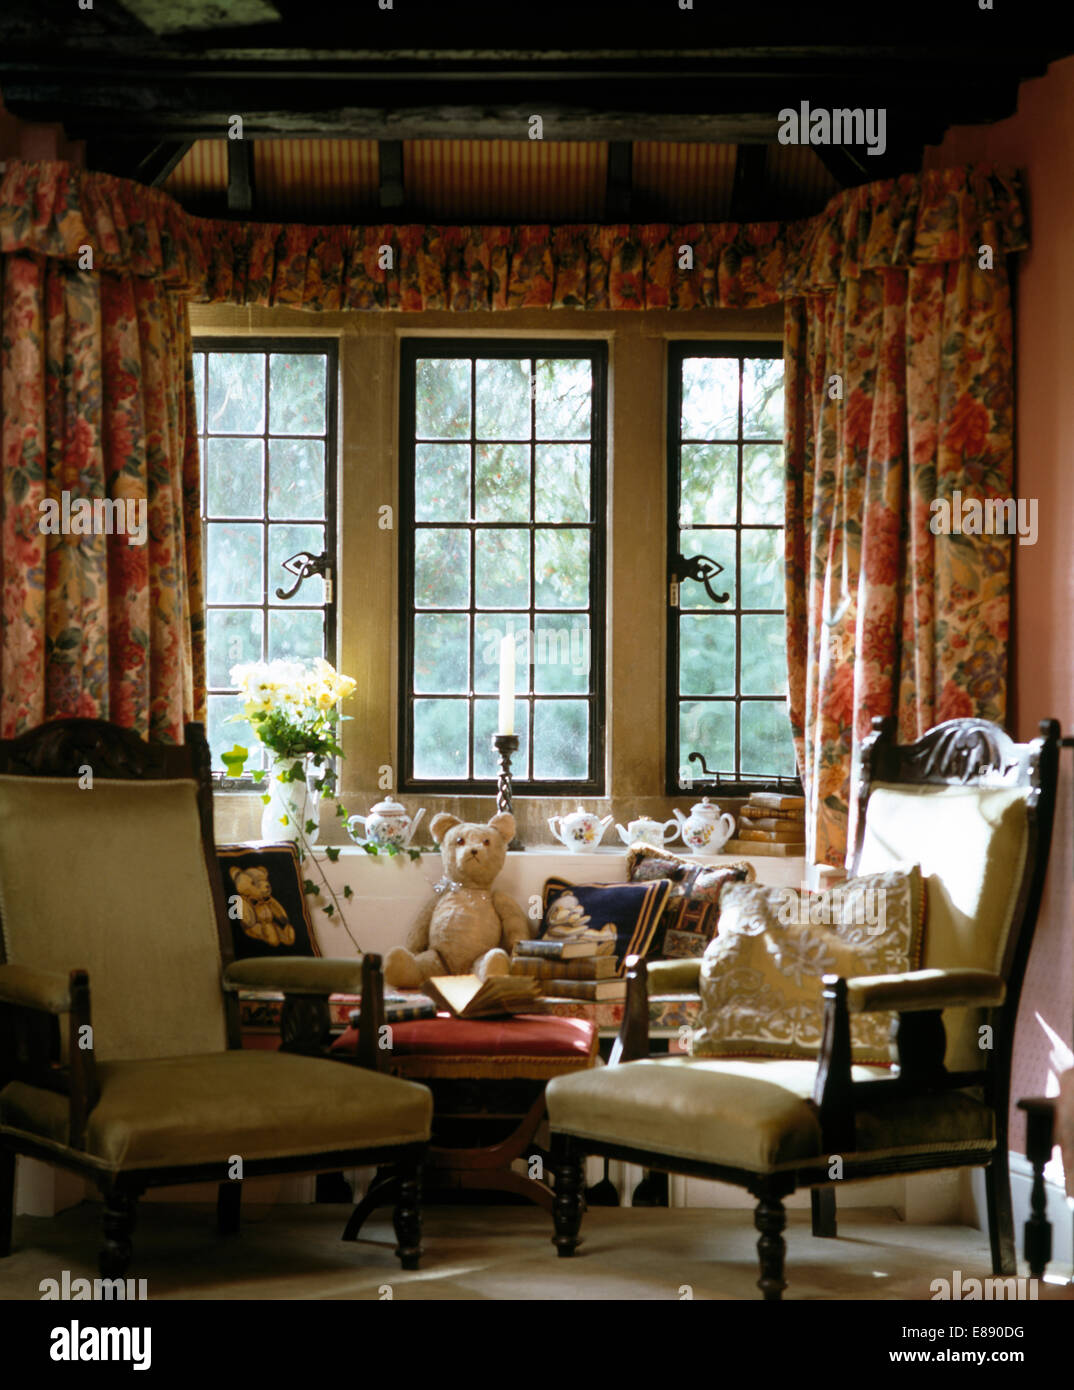 White, wood framed chairs in front of casement window with floral curtains in country bedroom - Stock Image